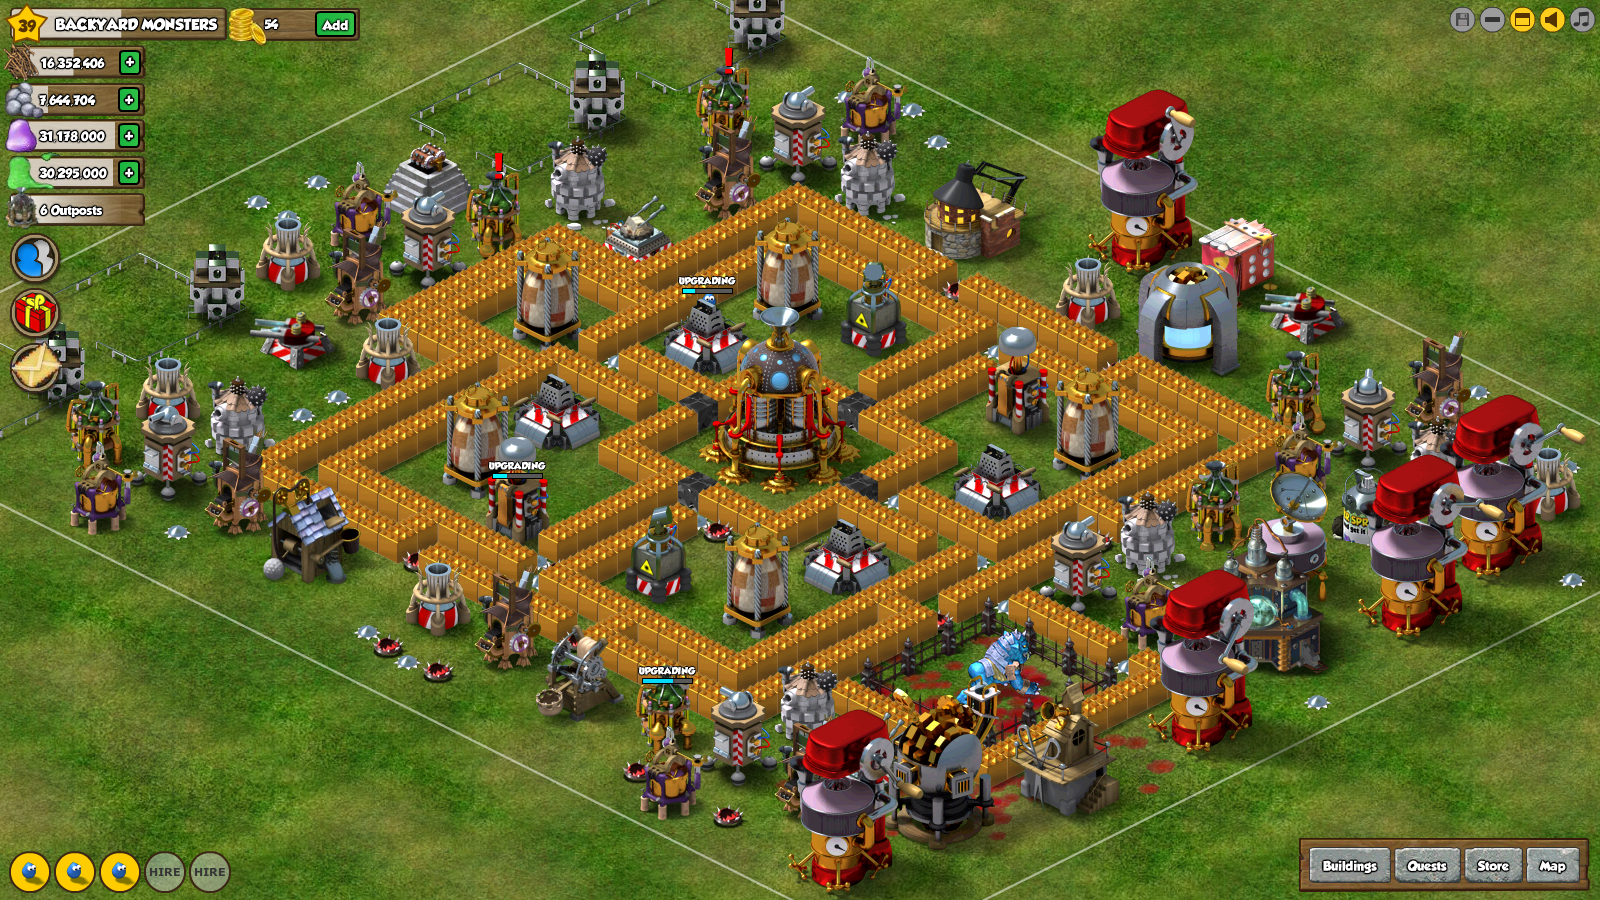 strategies to building a strong base backyard monsters wiki